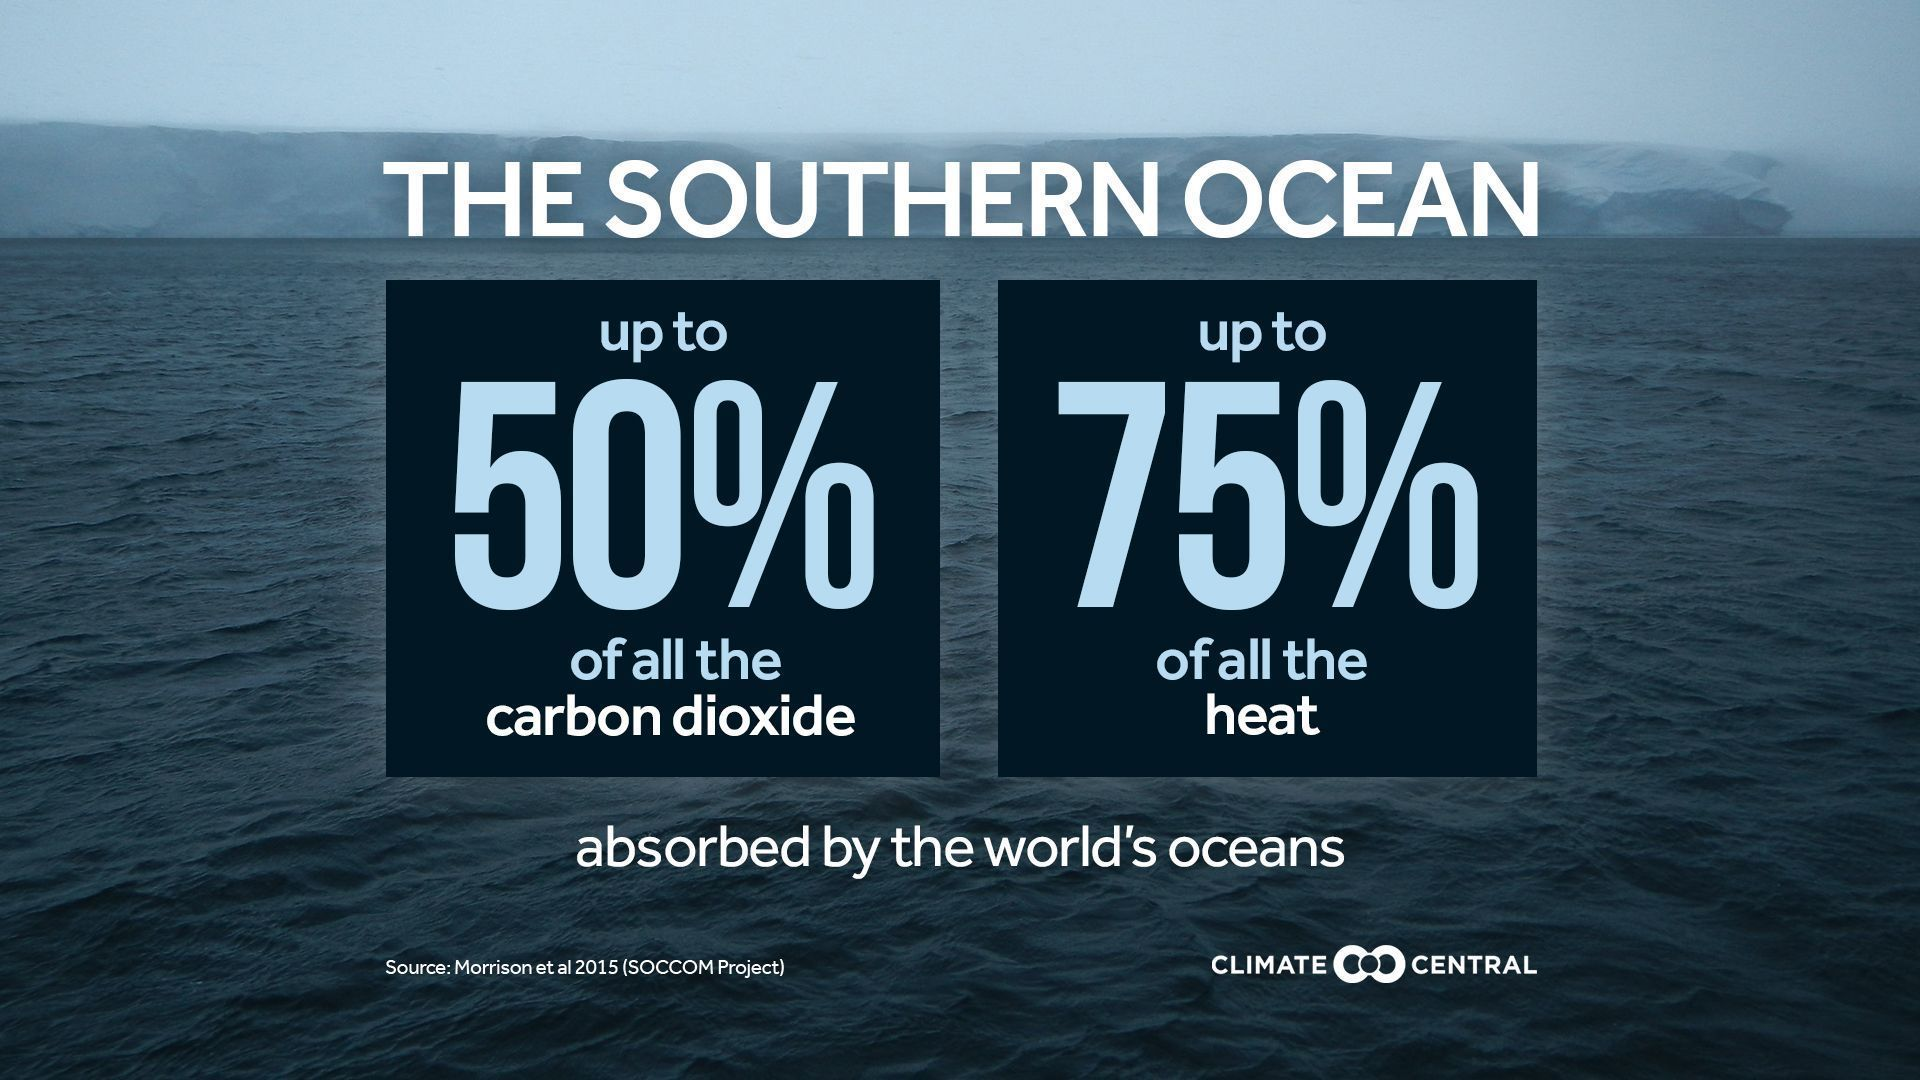 Here's why it's so important to study the Southern Ocean https://t.co/iYMd1jp6H1